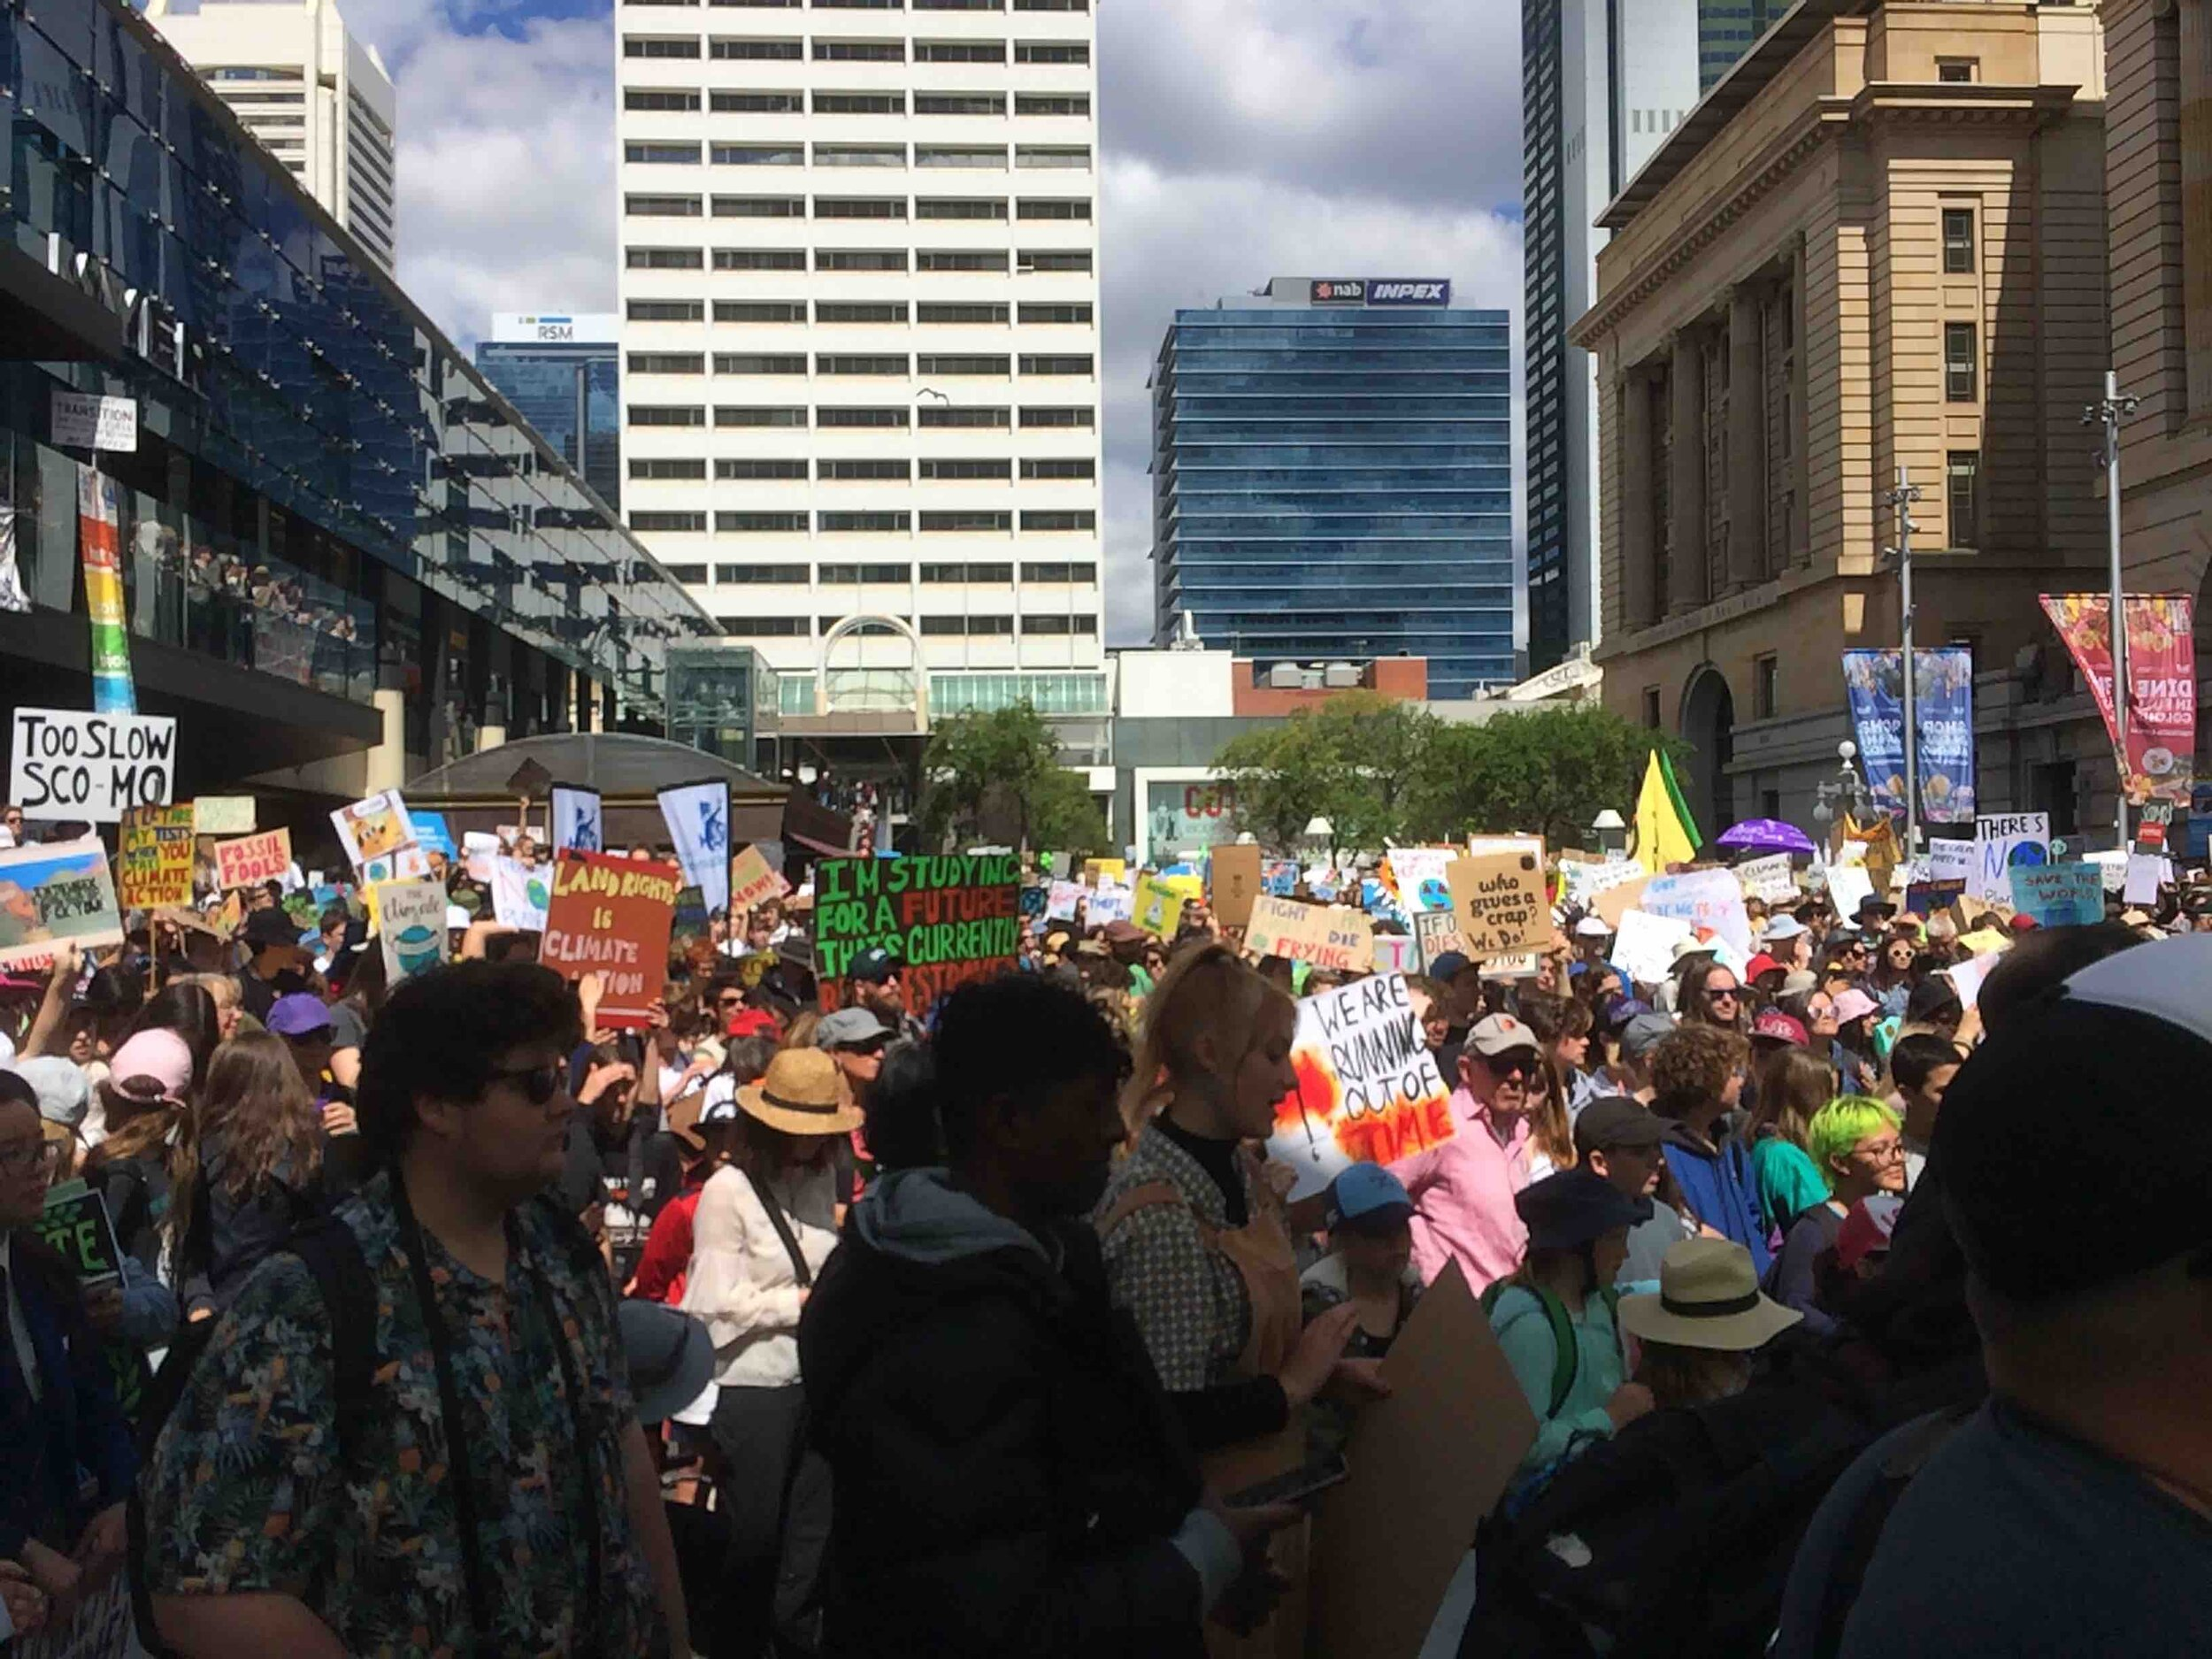 The Perth climate strike in Australia. Pic: Anthony James.